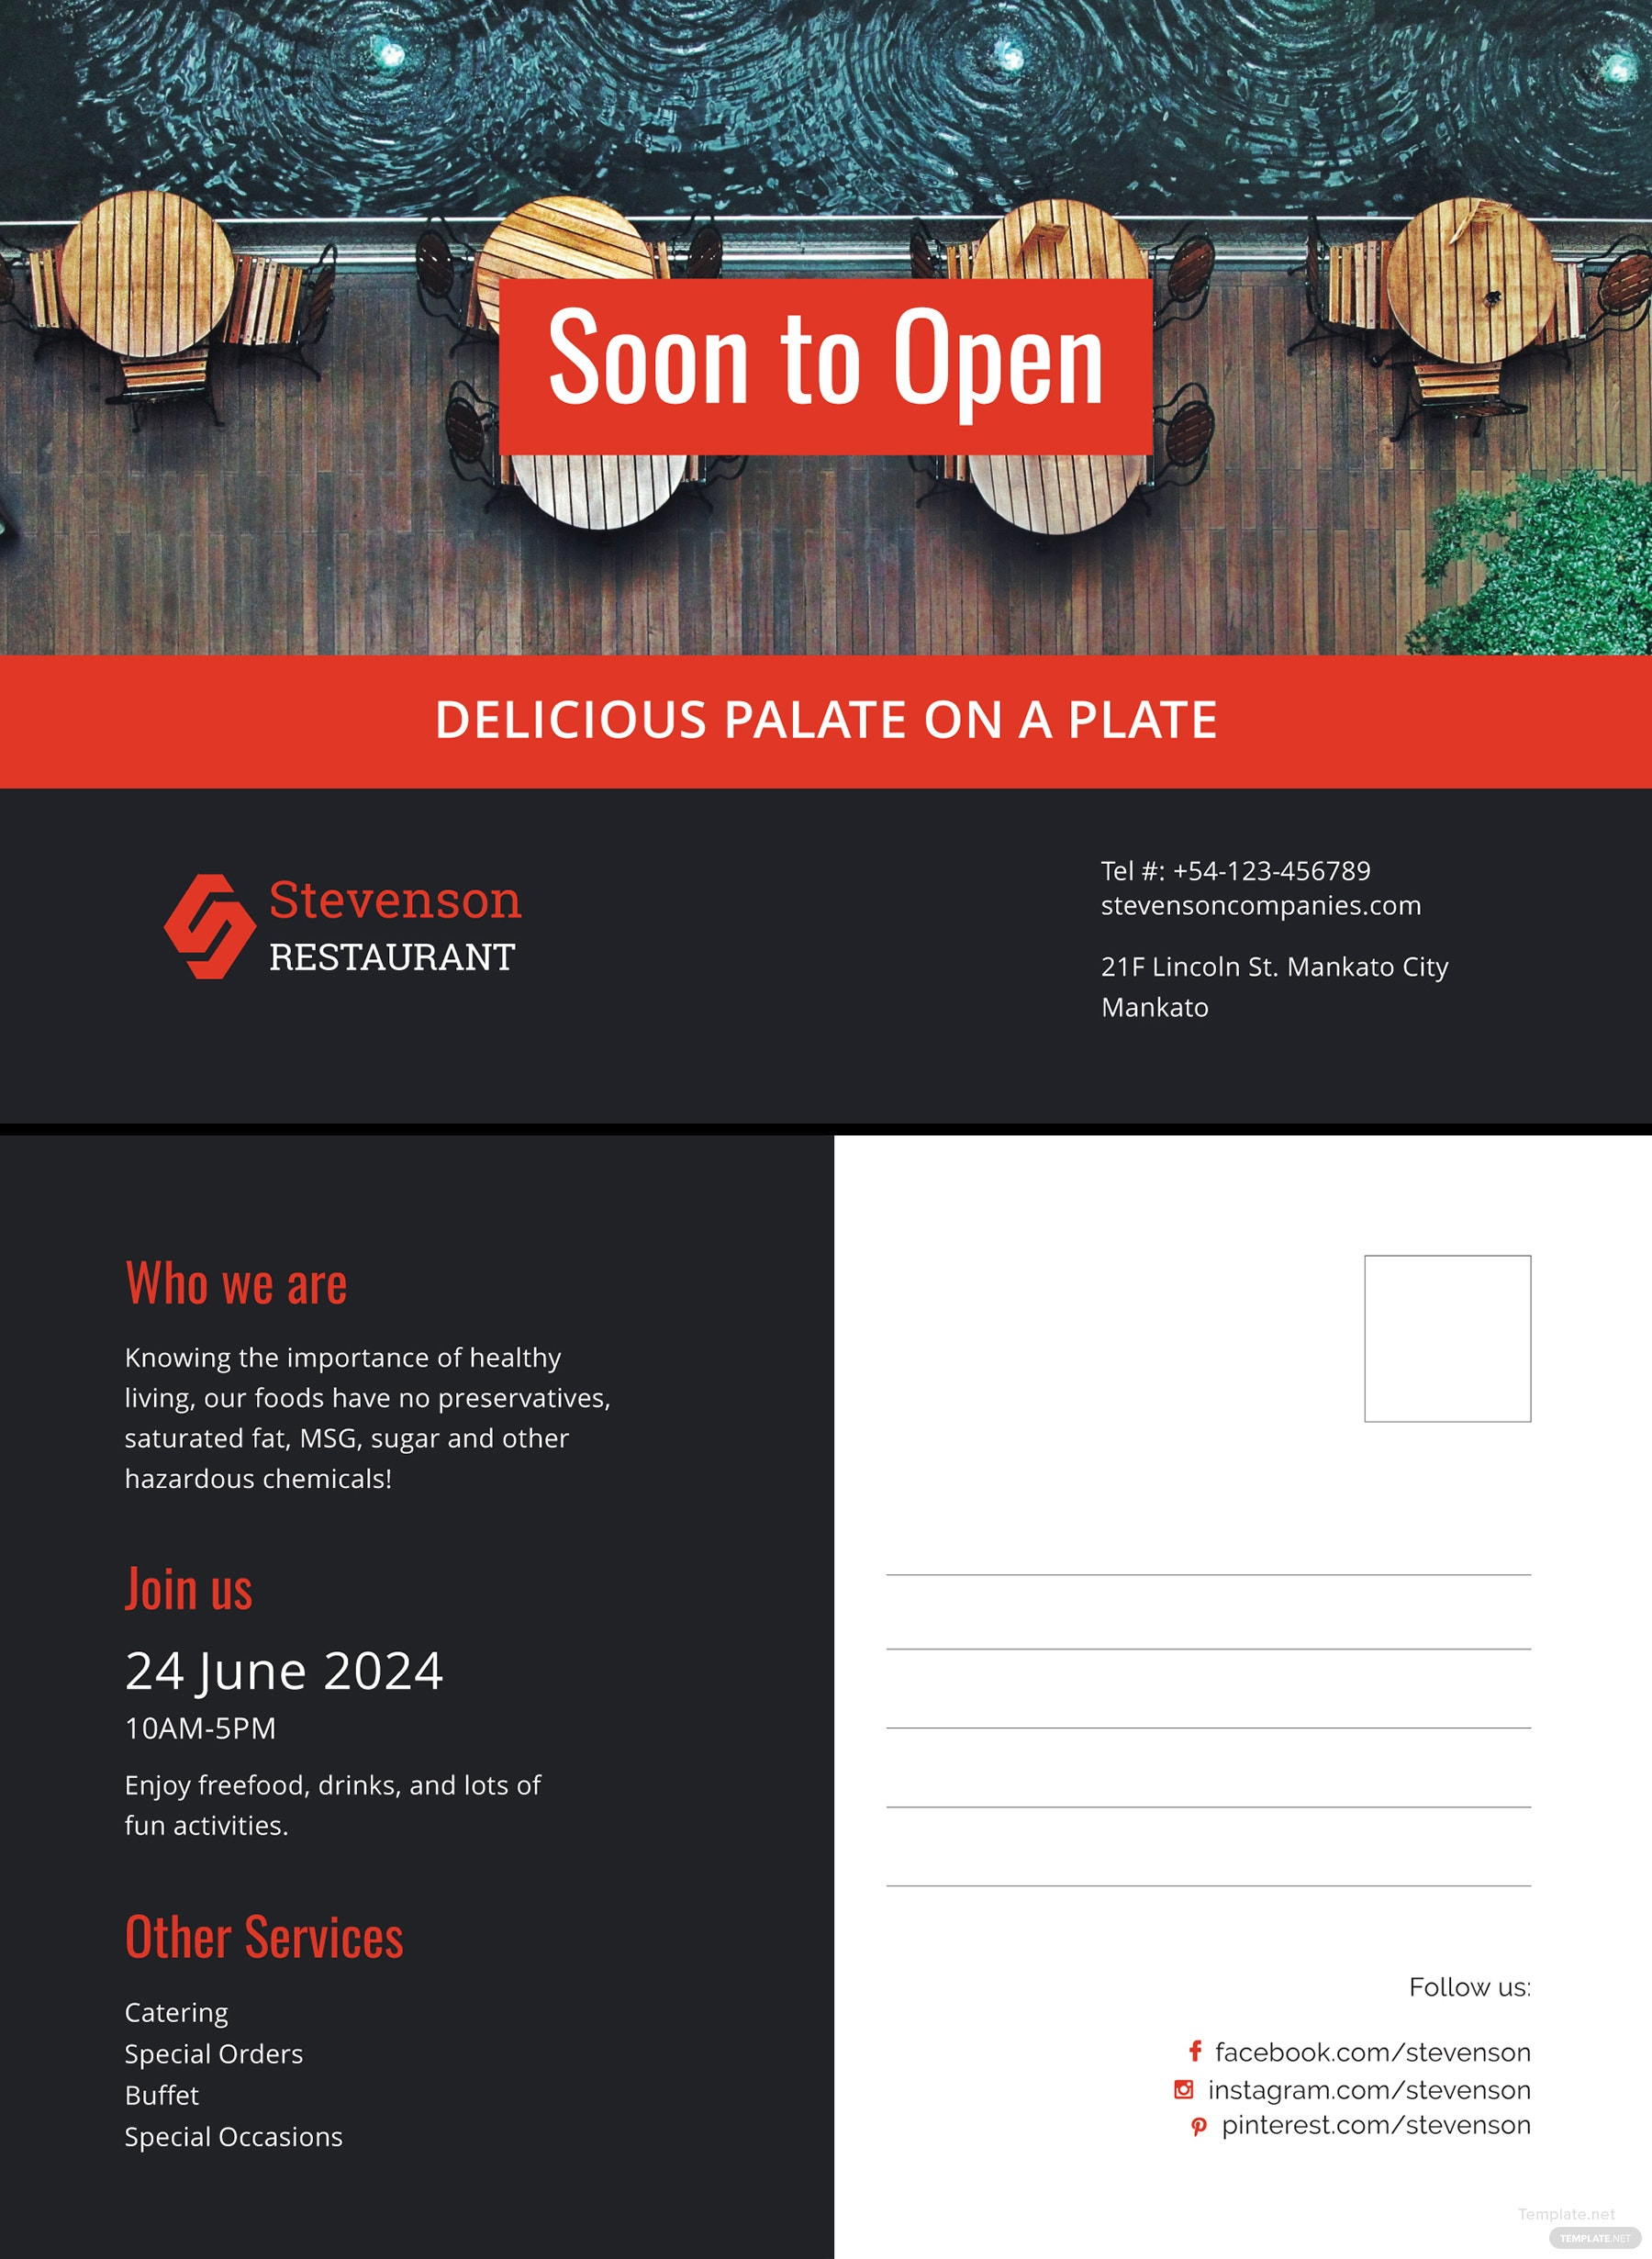 Free New Business Announcement Postcard Template in Microsoft Word ...